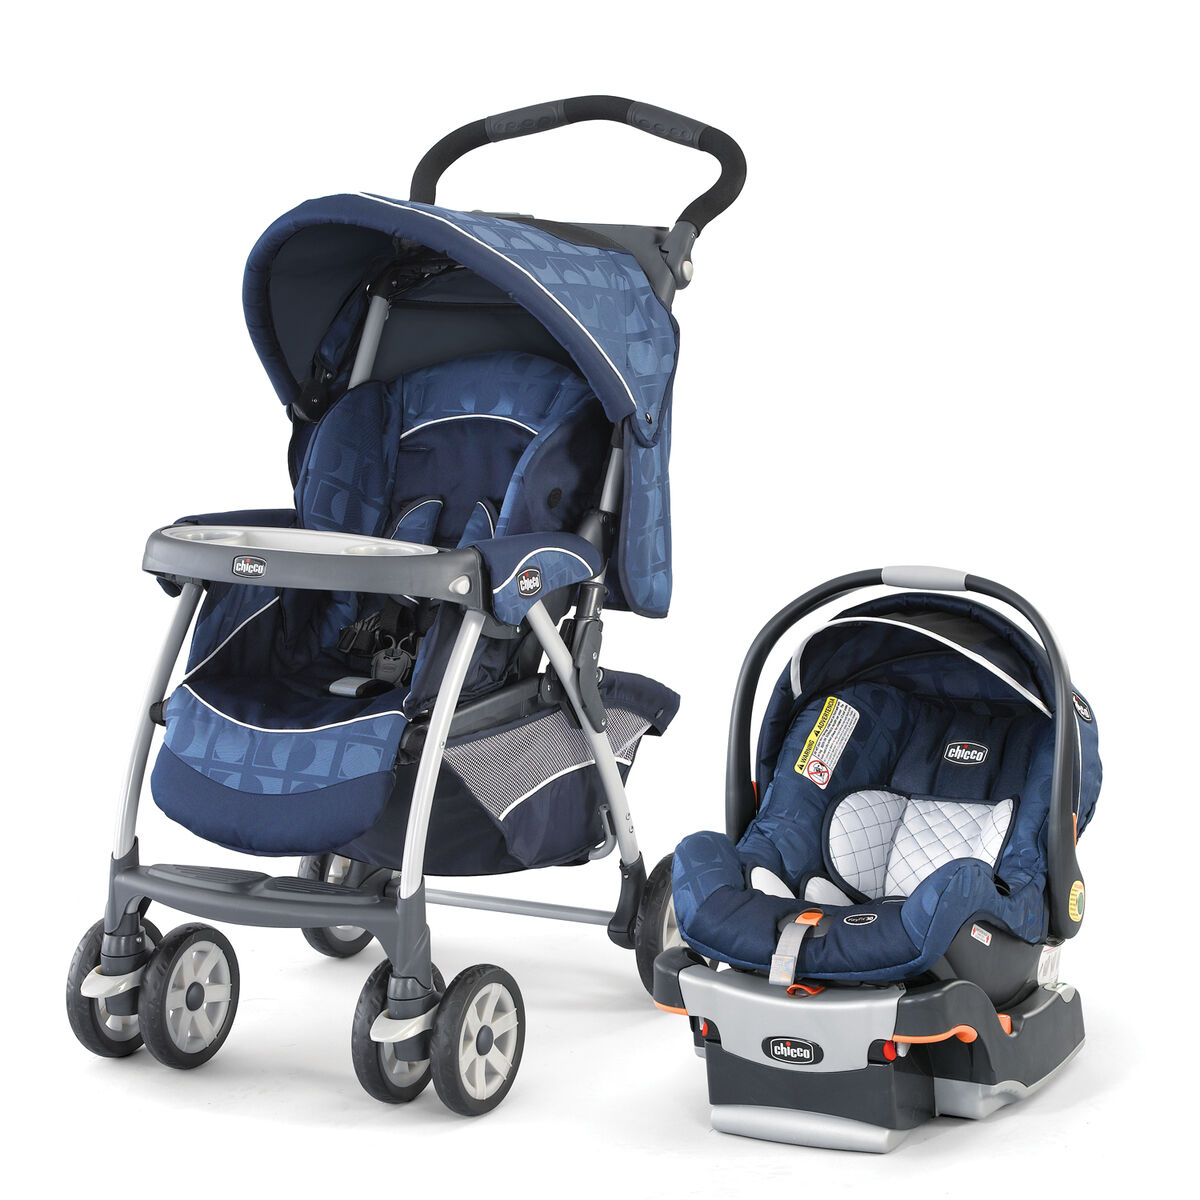 Chicco Cortina Keyfit 30 Travel System Azura